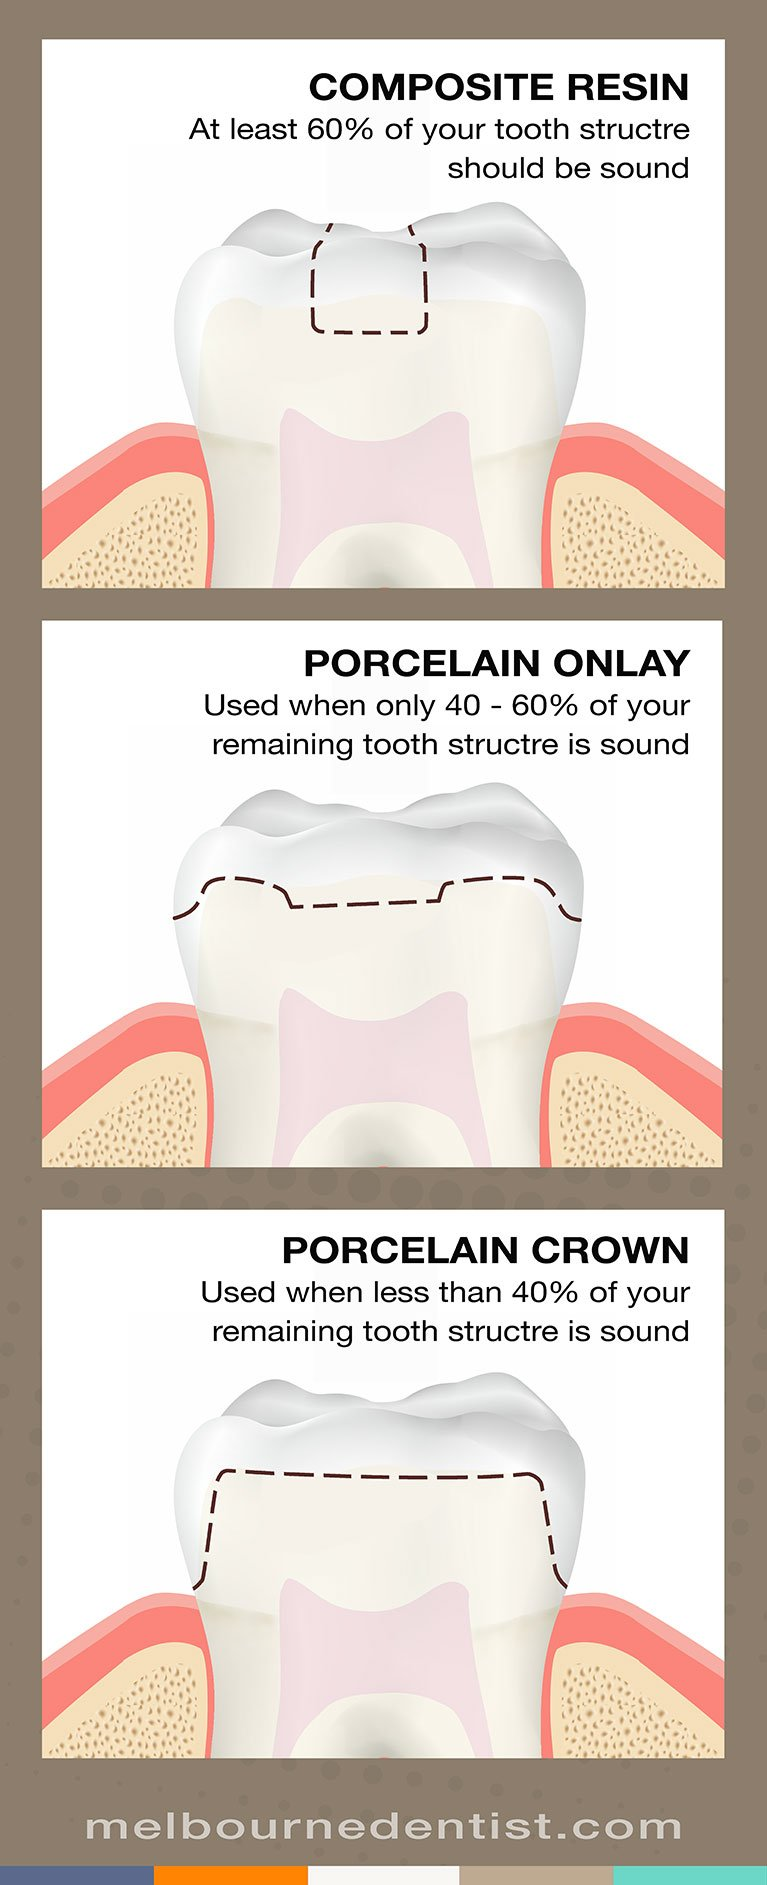 Resin vs onlays crowns